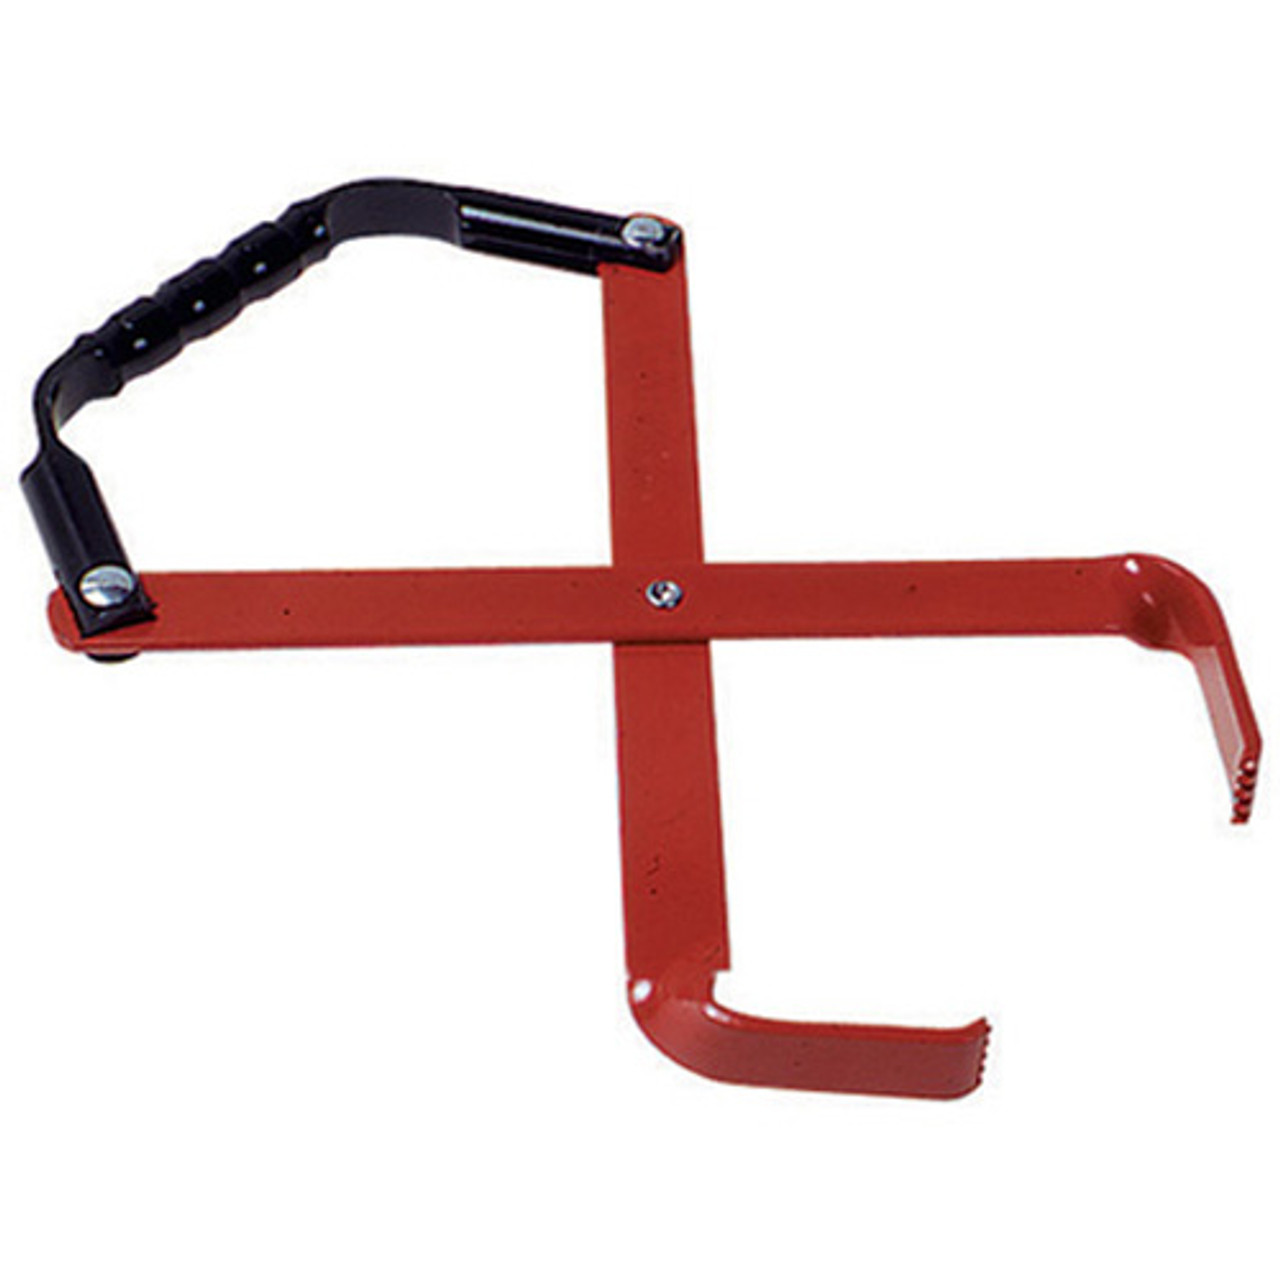 ATD Tools 5486 Heavy-Duty Battery Carrier